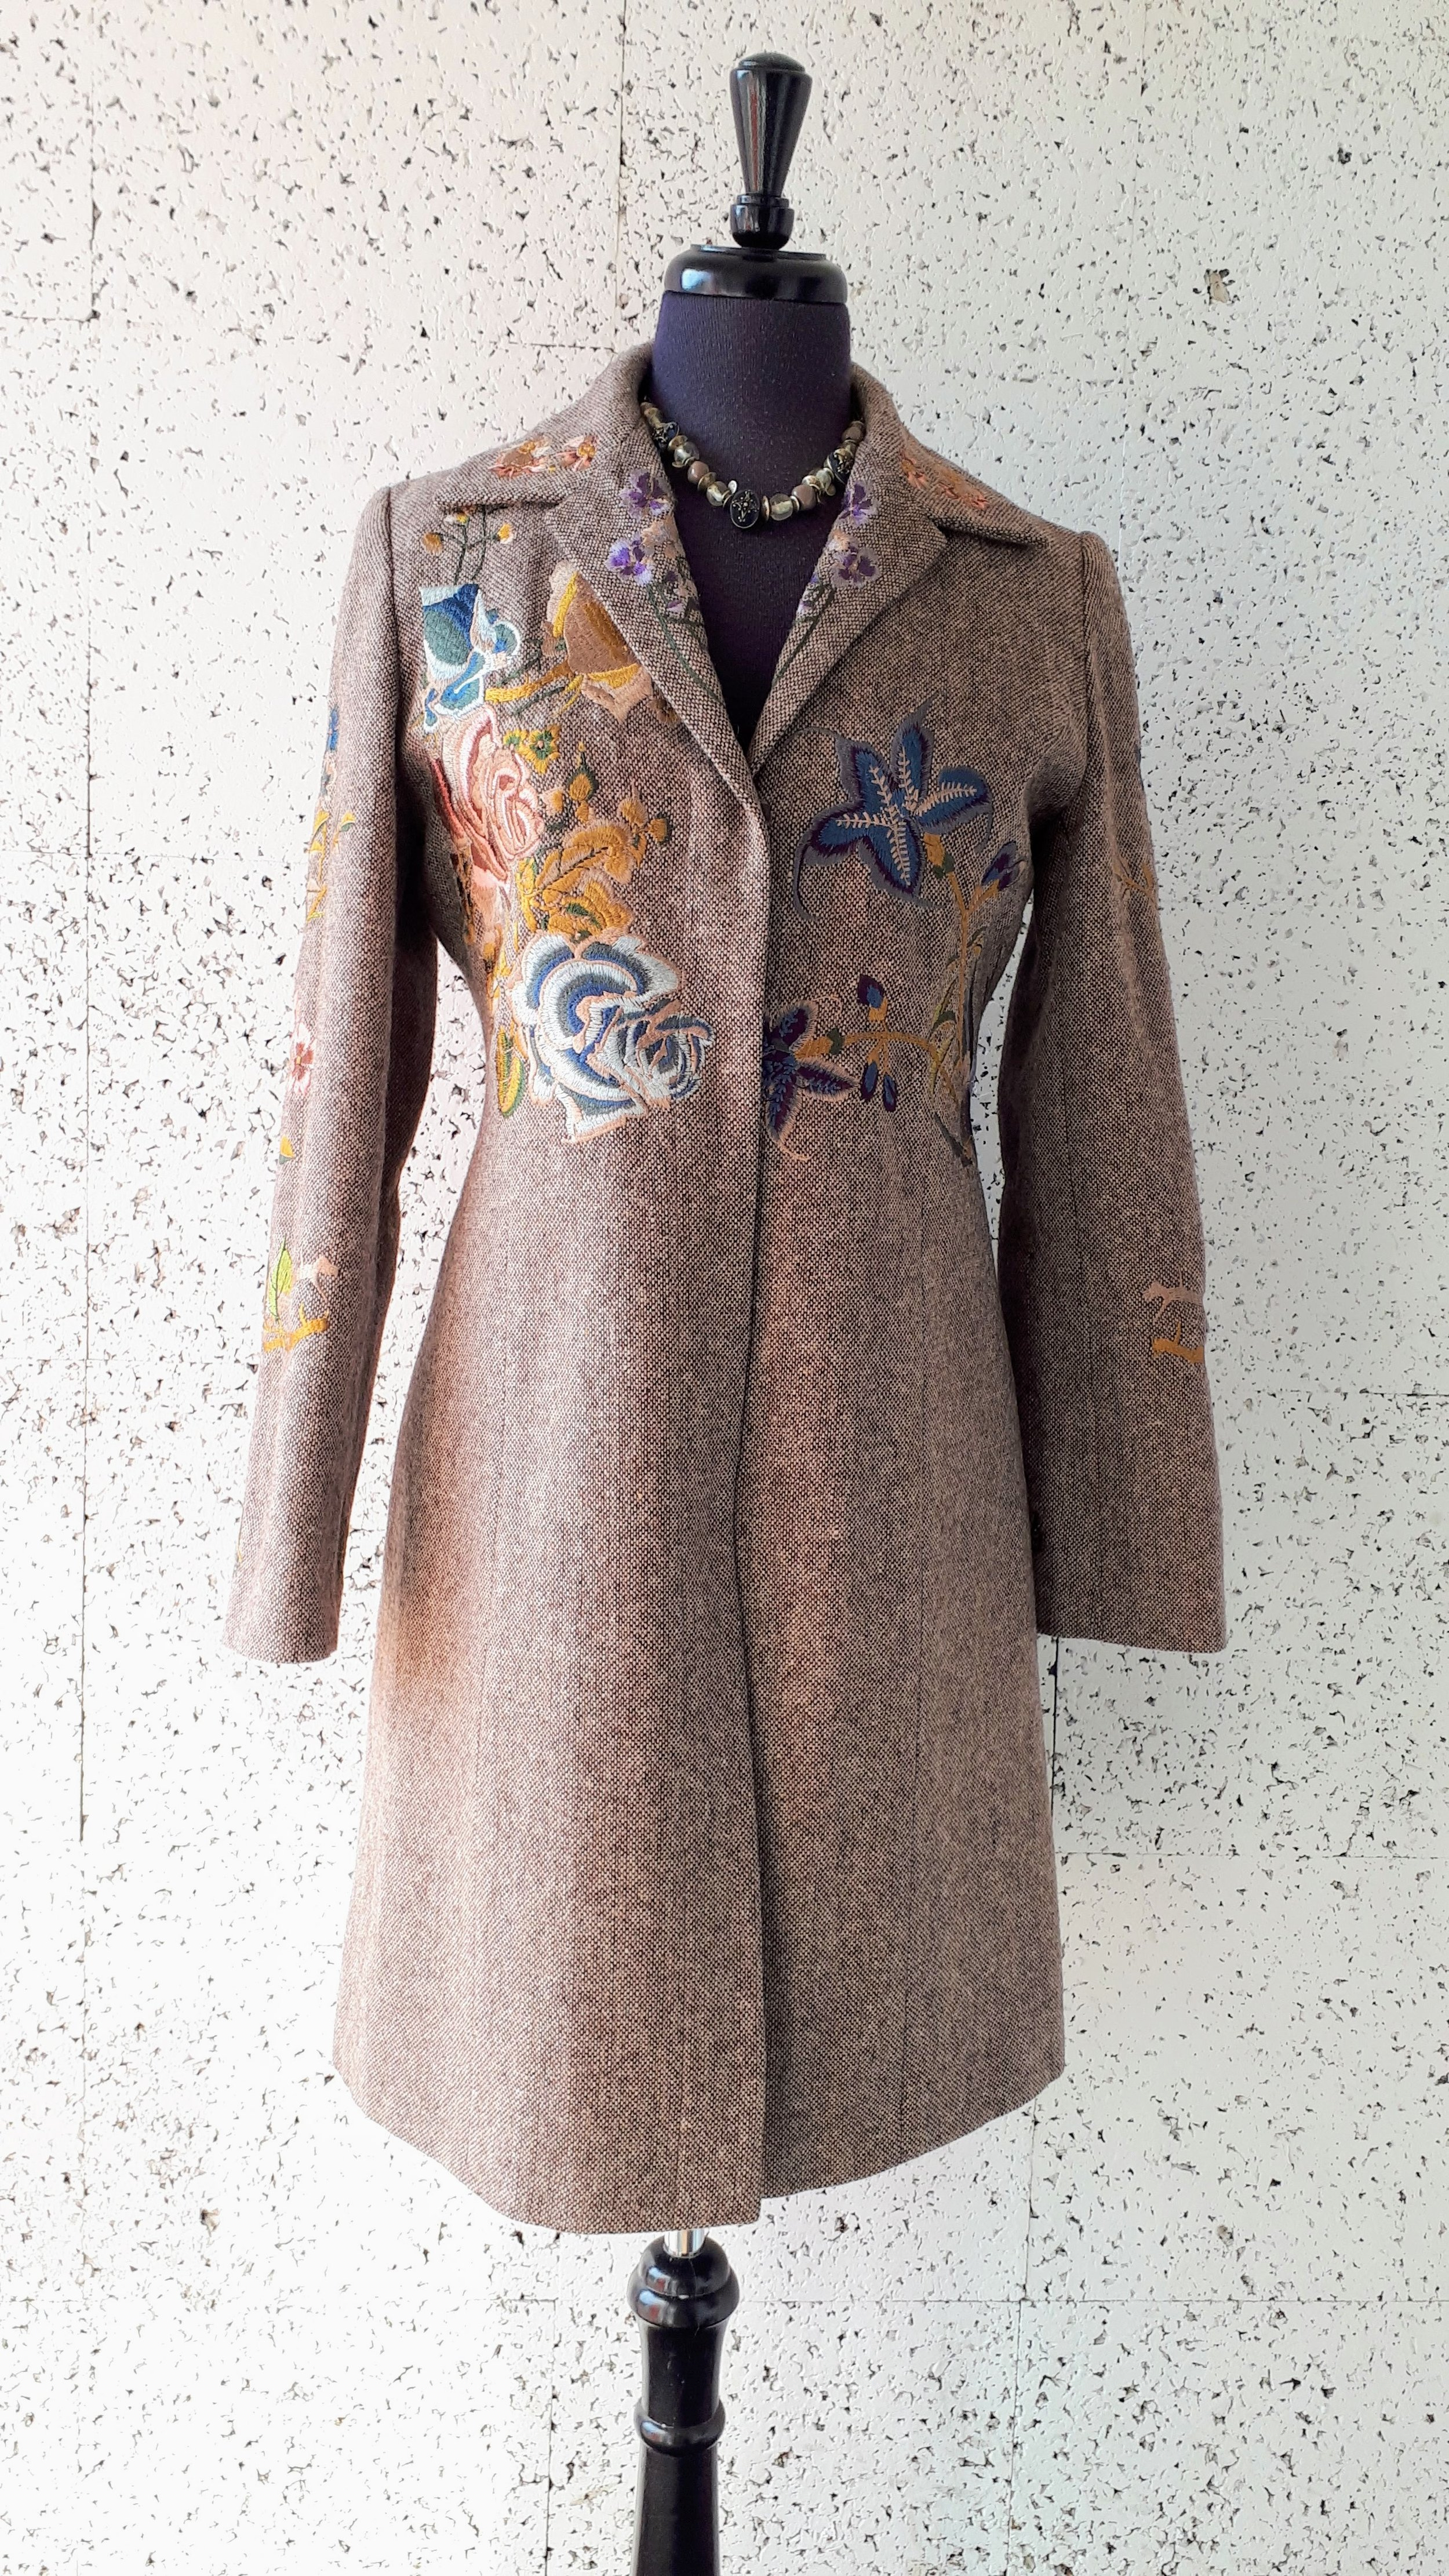 Simply Manankin coat; Size M, $48